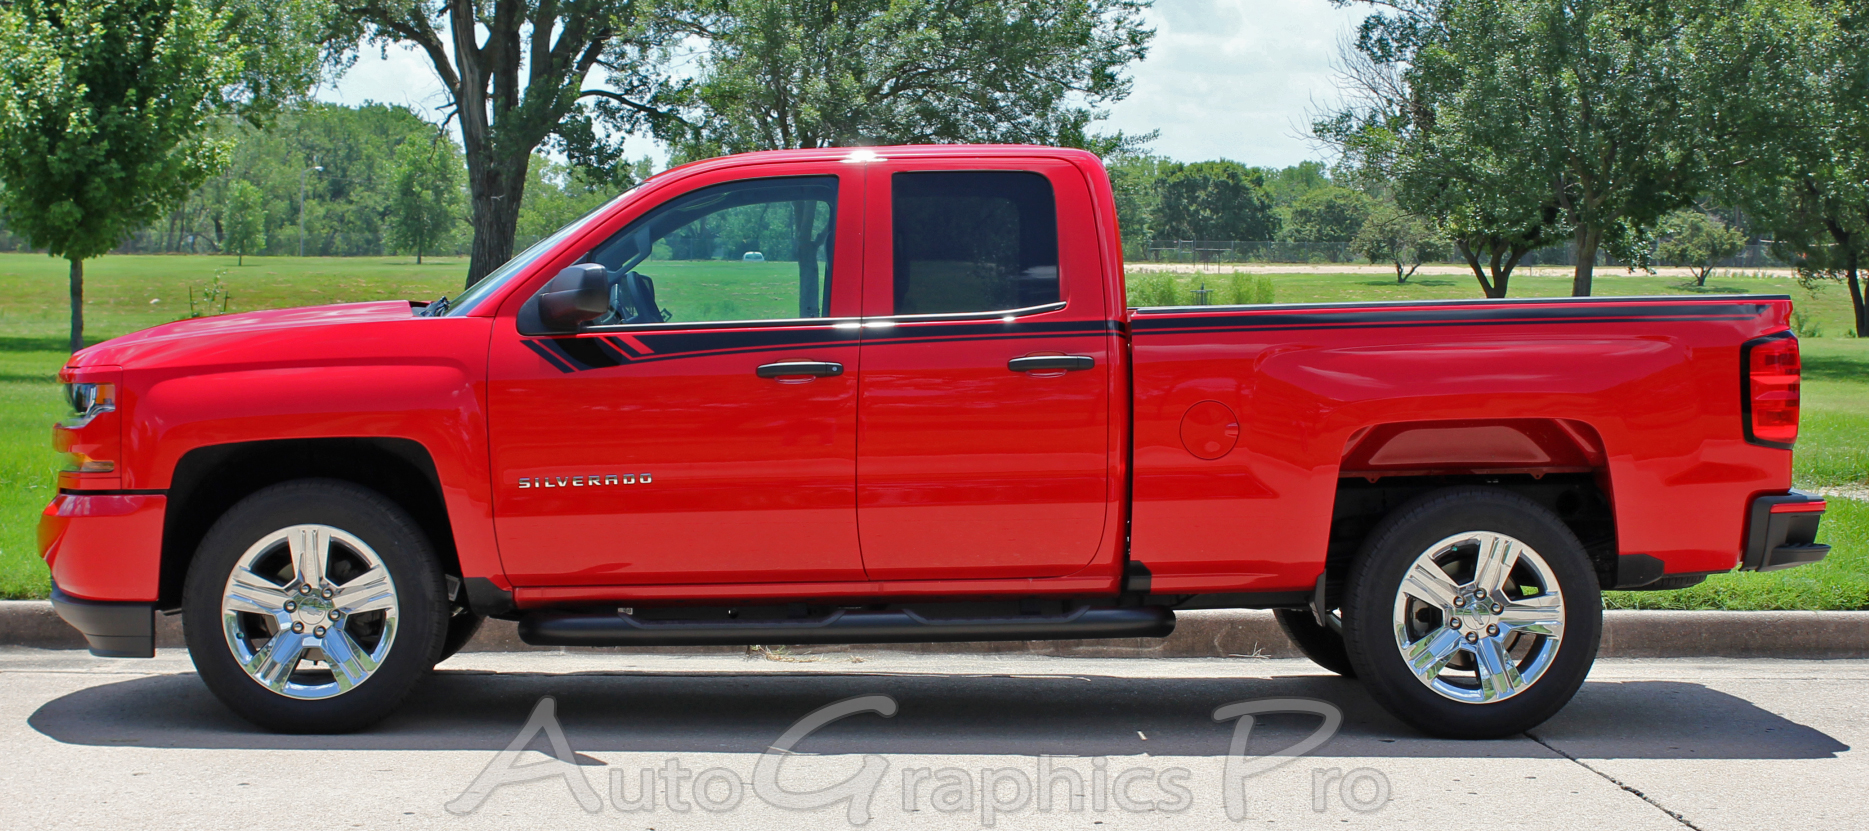 2014 2017 2018 Chevy Silverado Door Stripes Breaker Upper Body Truck Accent Decals Side Vinyl Graphics Special Edition Rally Kit